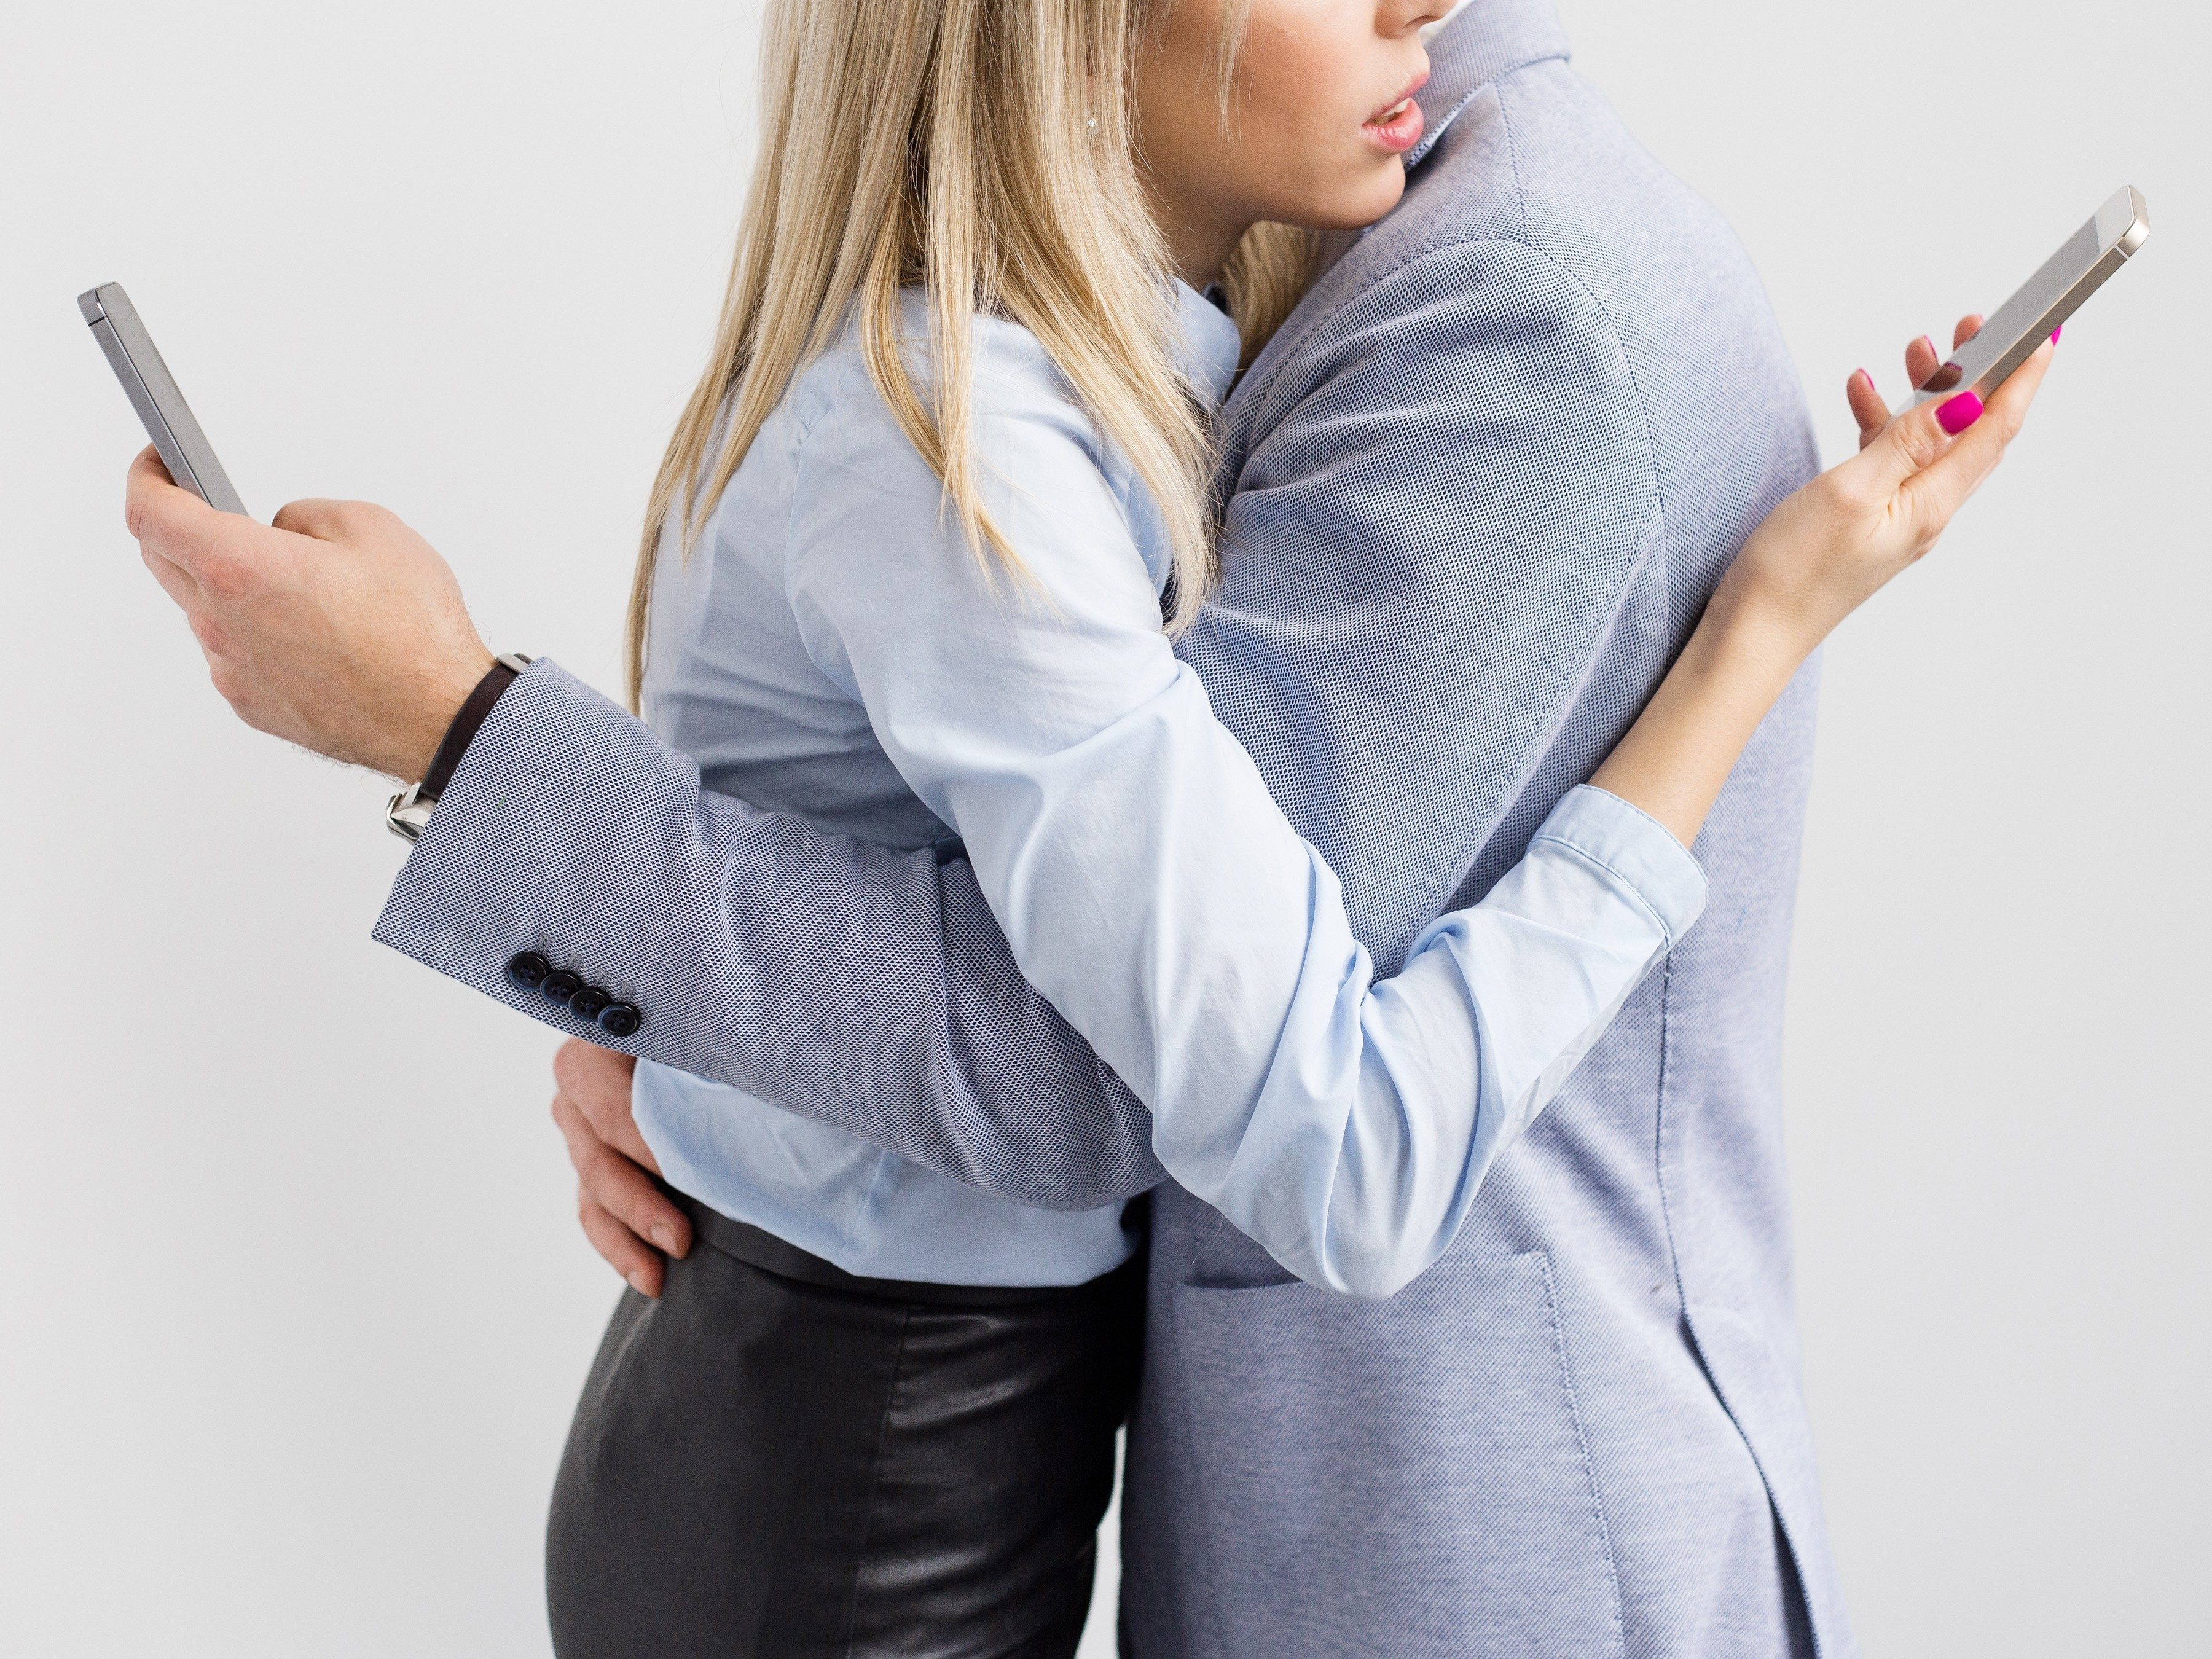 How to Prevent Technology from Ruining Your Relationship